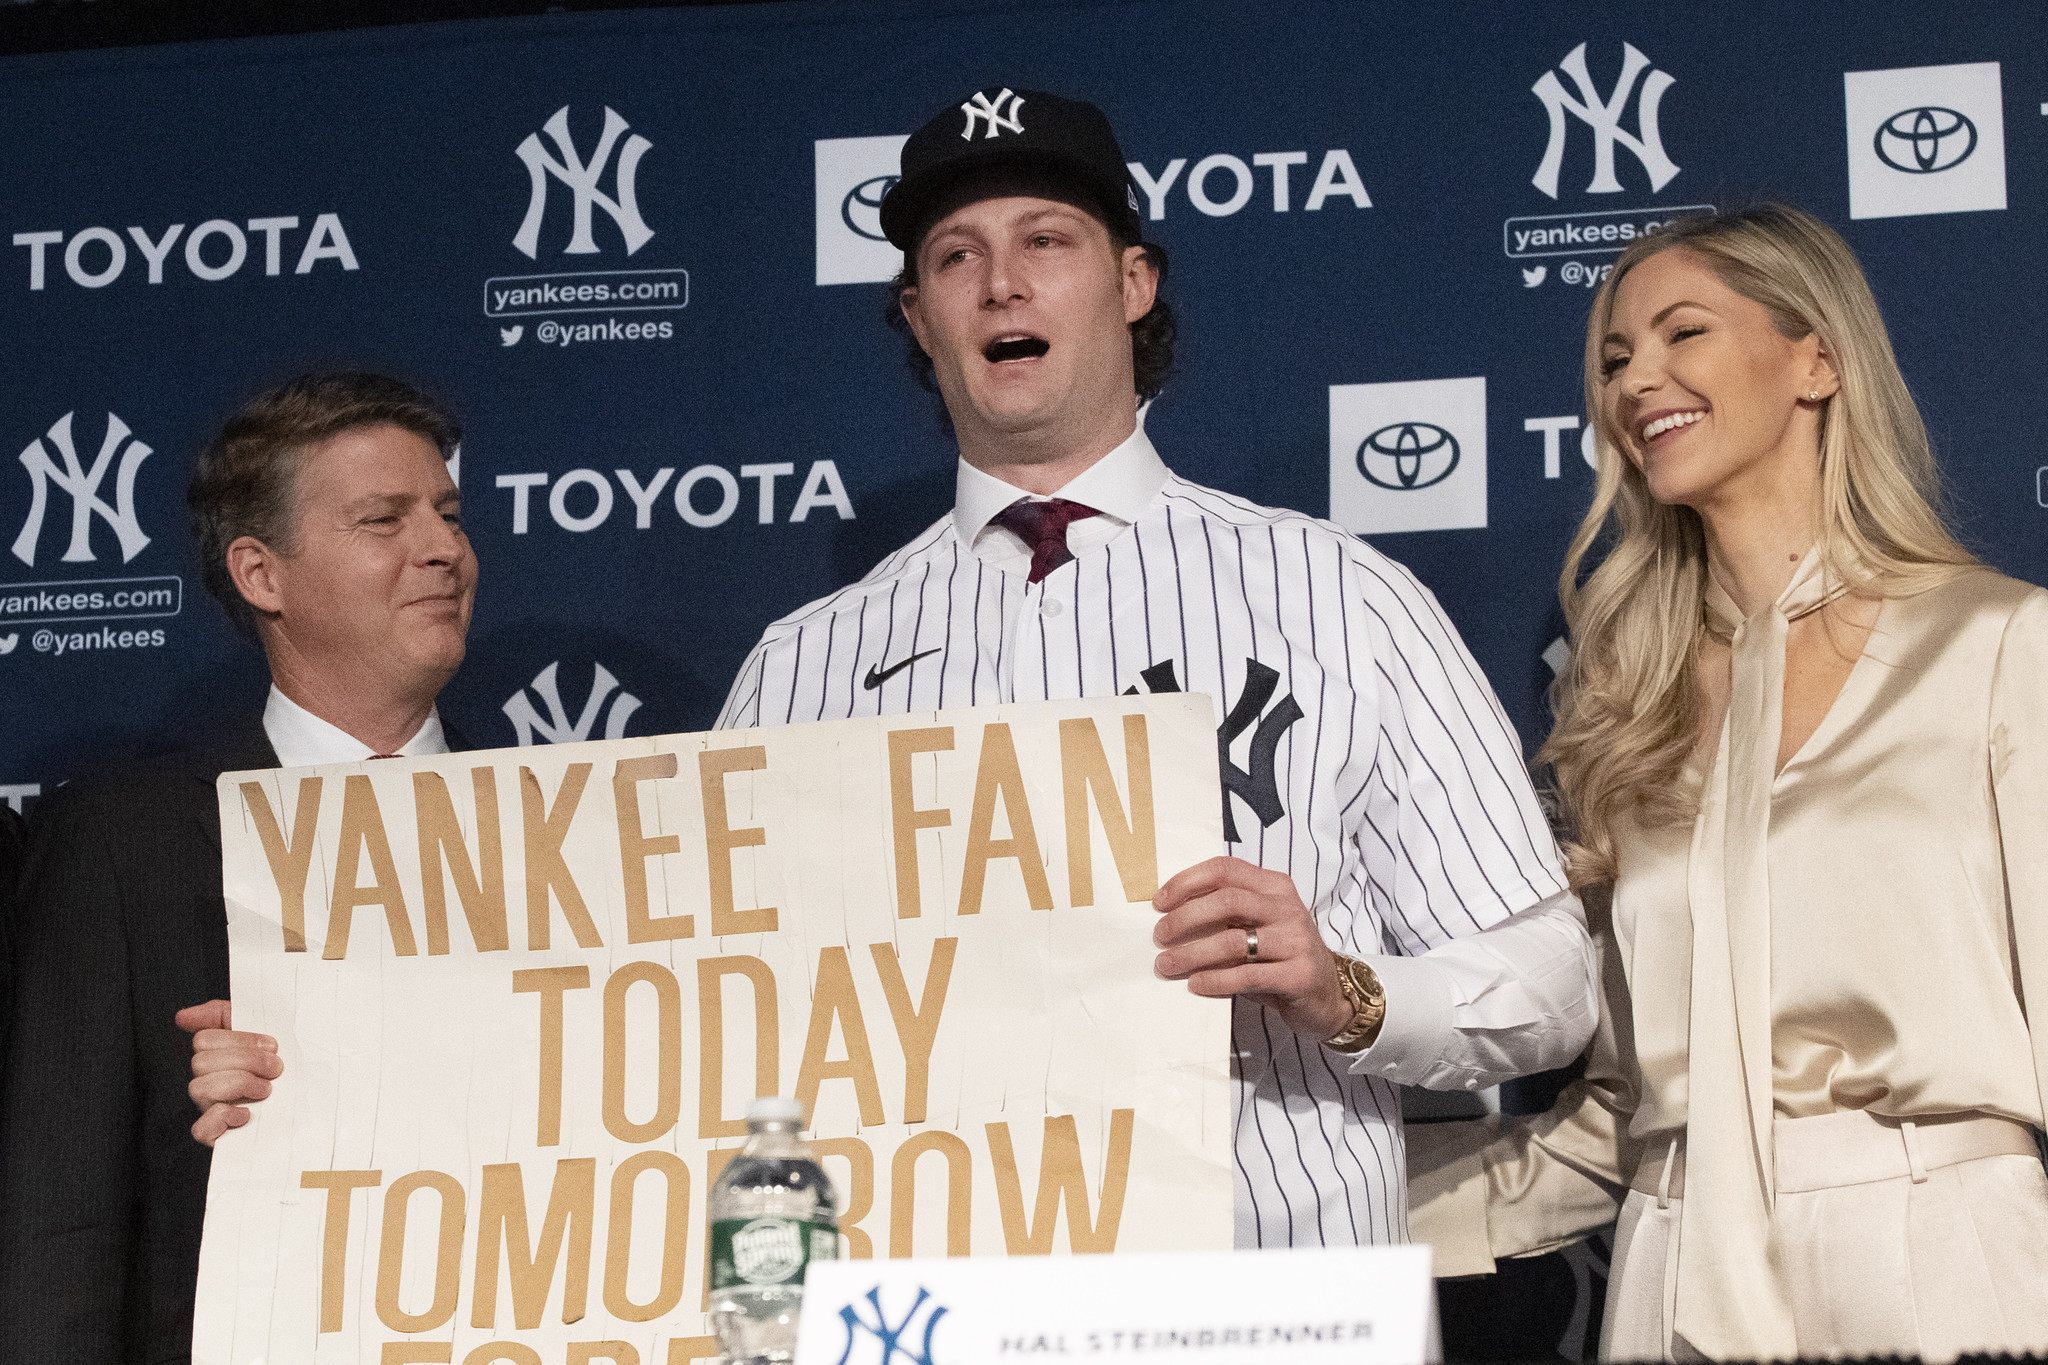 Hal Steinbrenner trying to look past Astros cheating scandal, focus on loaded Yankees squad